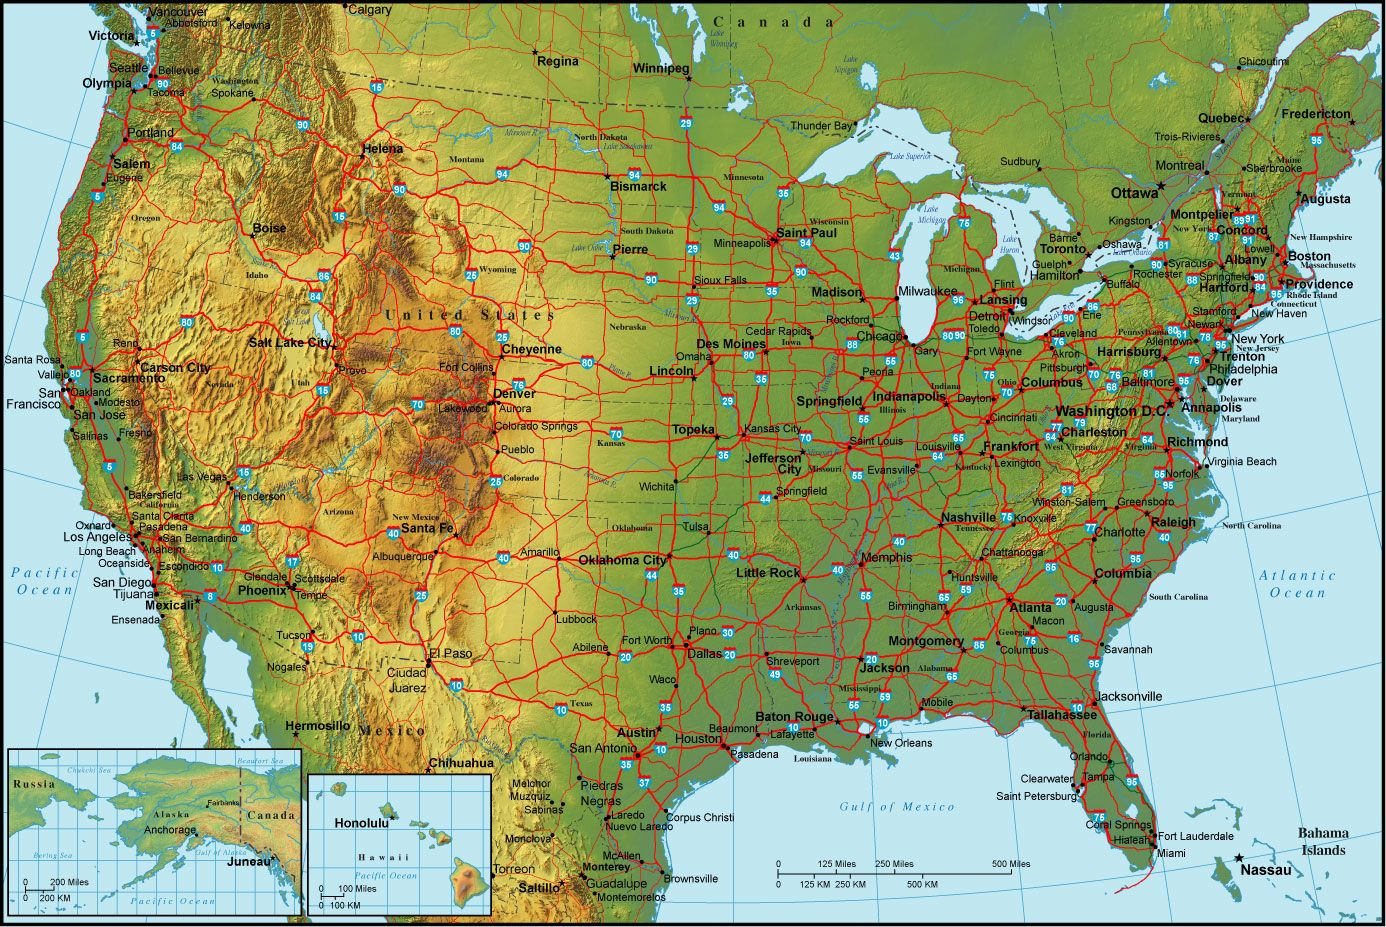 Physical Map Of The United States With Main Geographycal Features - Physical map of usa